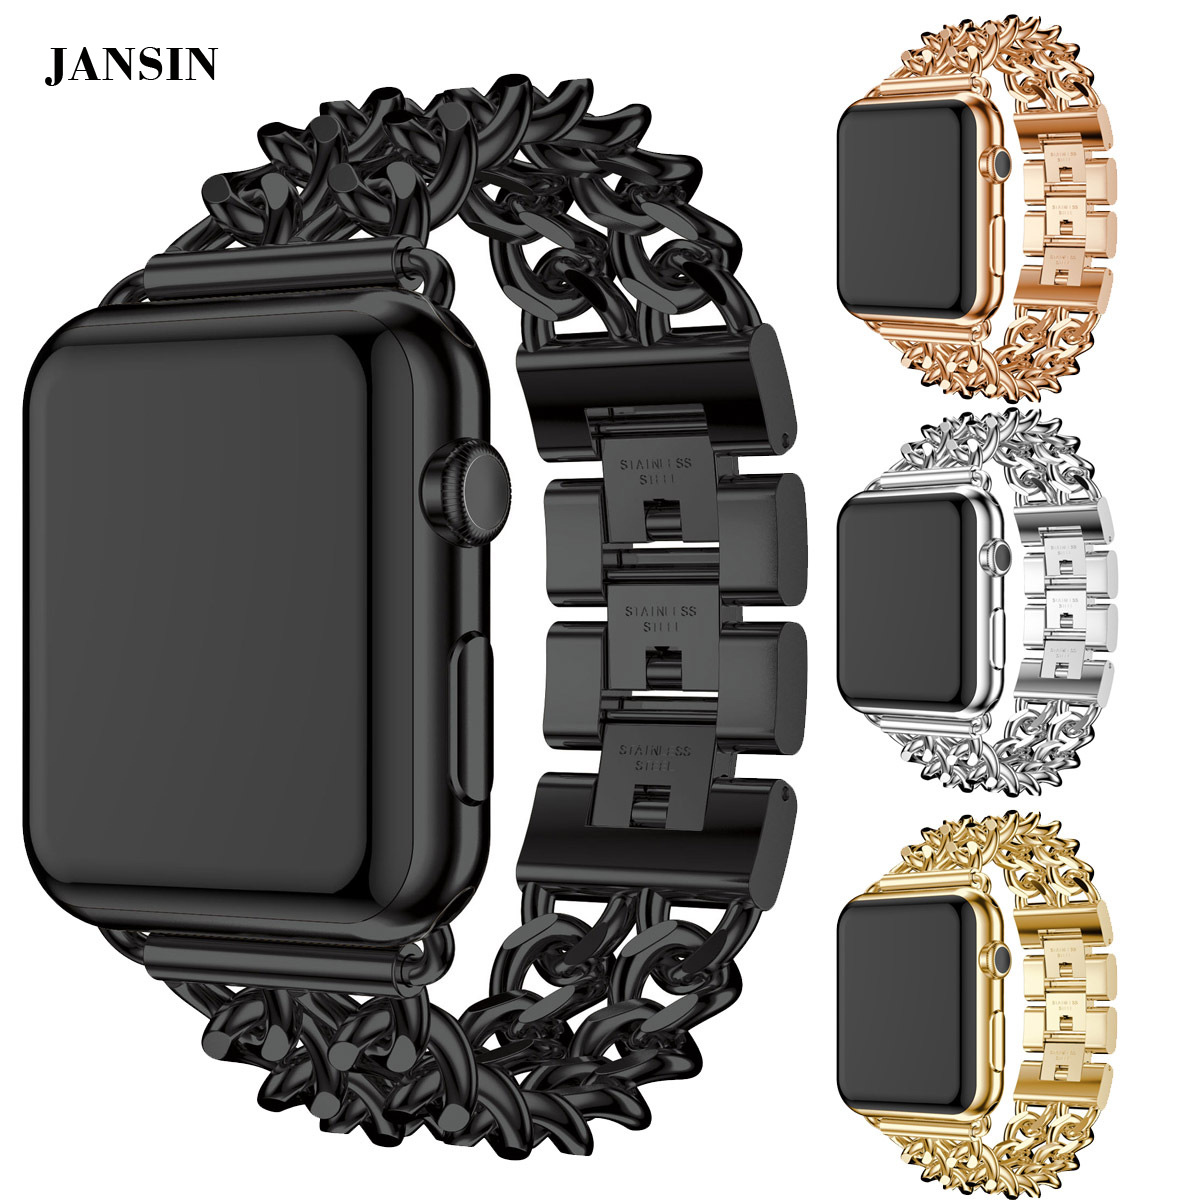 JANSIN Link Bracelet Band For Apple Watch 38mm 42mm 40 44mm Stainless Steel strap wristband Metal Band for iWatch Series 4 3 2 1 jansin strap band for apple watch 40mm 44mm 42mm 38mm for iwatch 3 2 1 stainless steel watch band link bracelet watchband strap